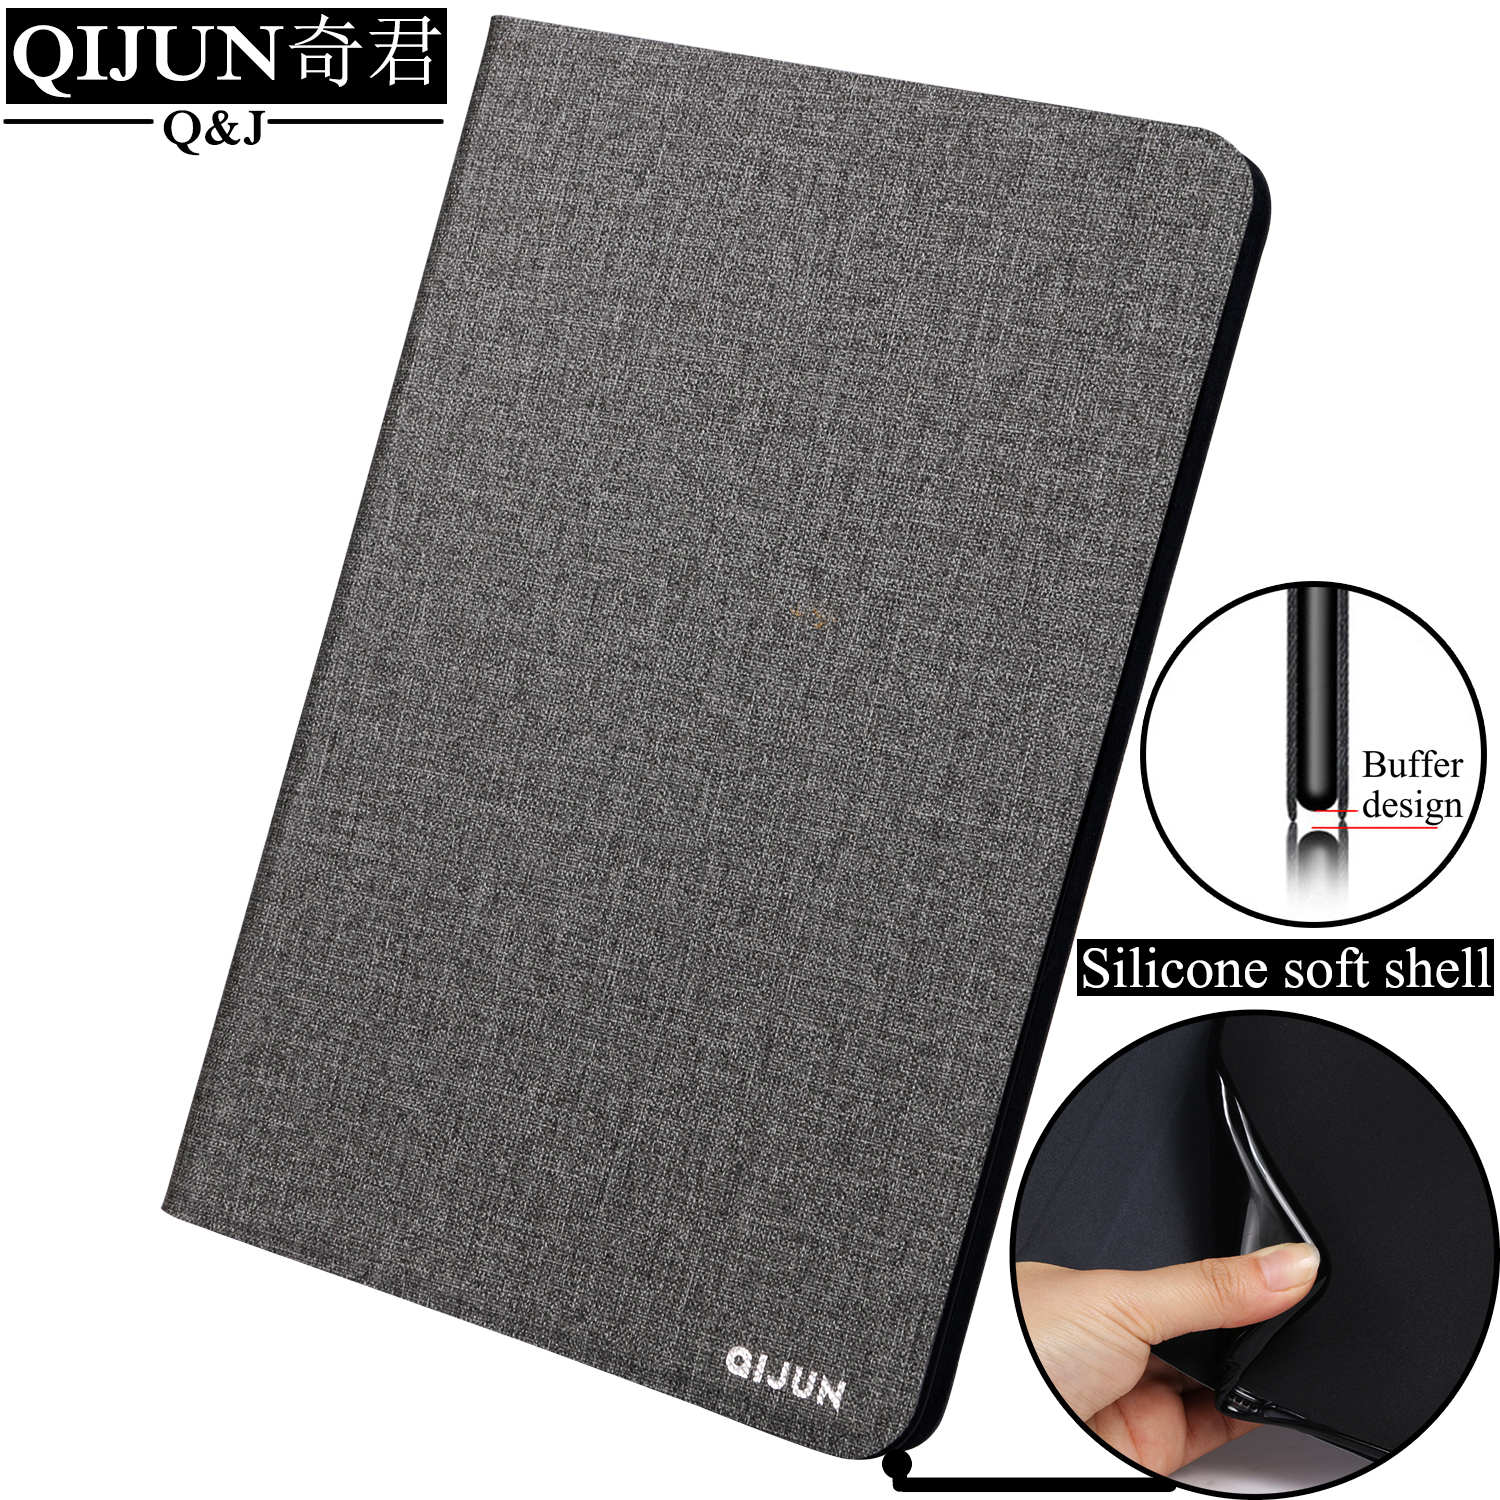 QIJUN tablet flip case for <font><b>Lenovo</b></font> Tab 2 <font><b>A7</b></font>-20 7.0-inch leather fundas protective Silicone soft Shell Stand cover for <font><b>tab2</b></font> <font><b>A7</b></font>-<font><b>10F</b></font> image